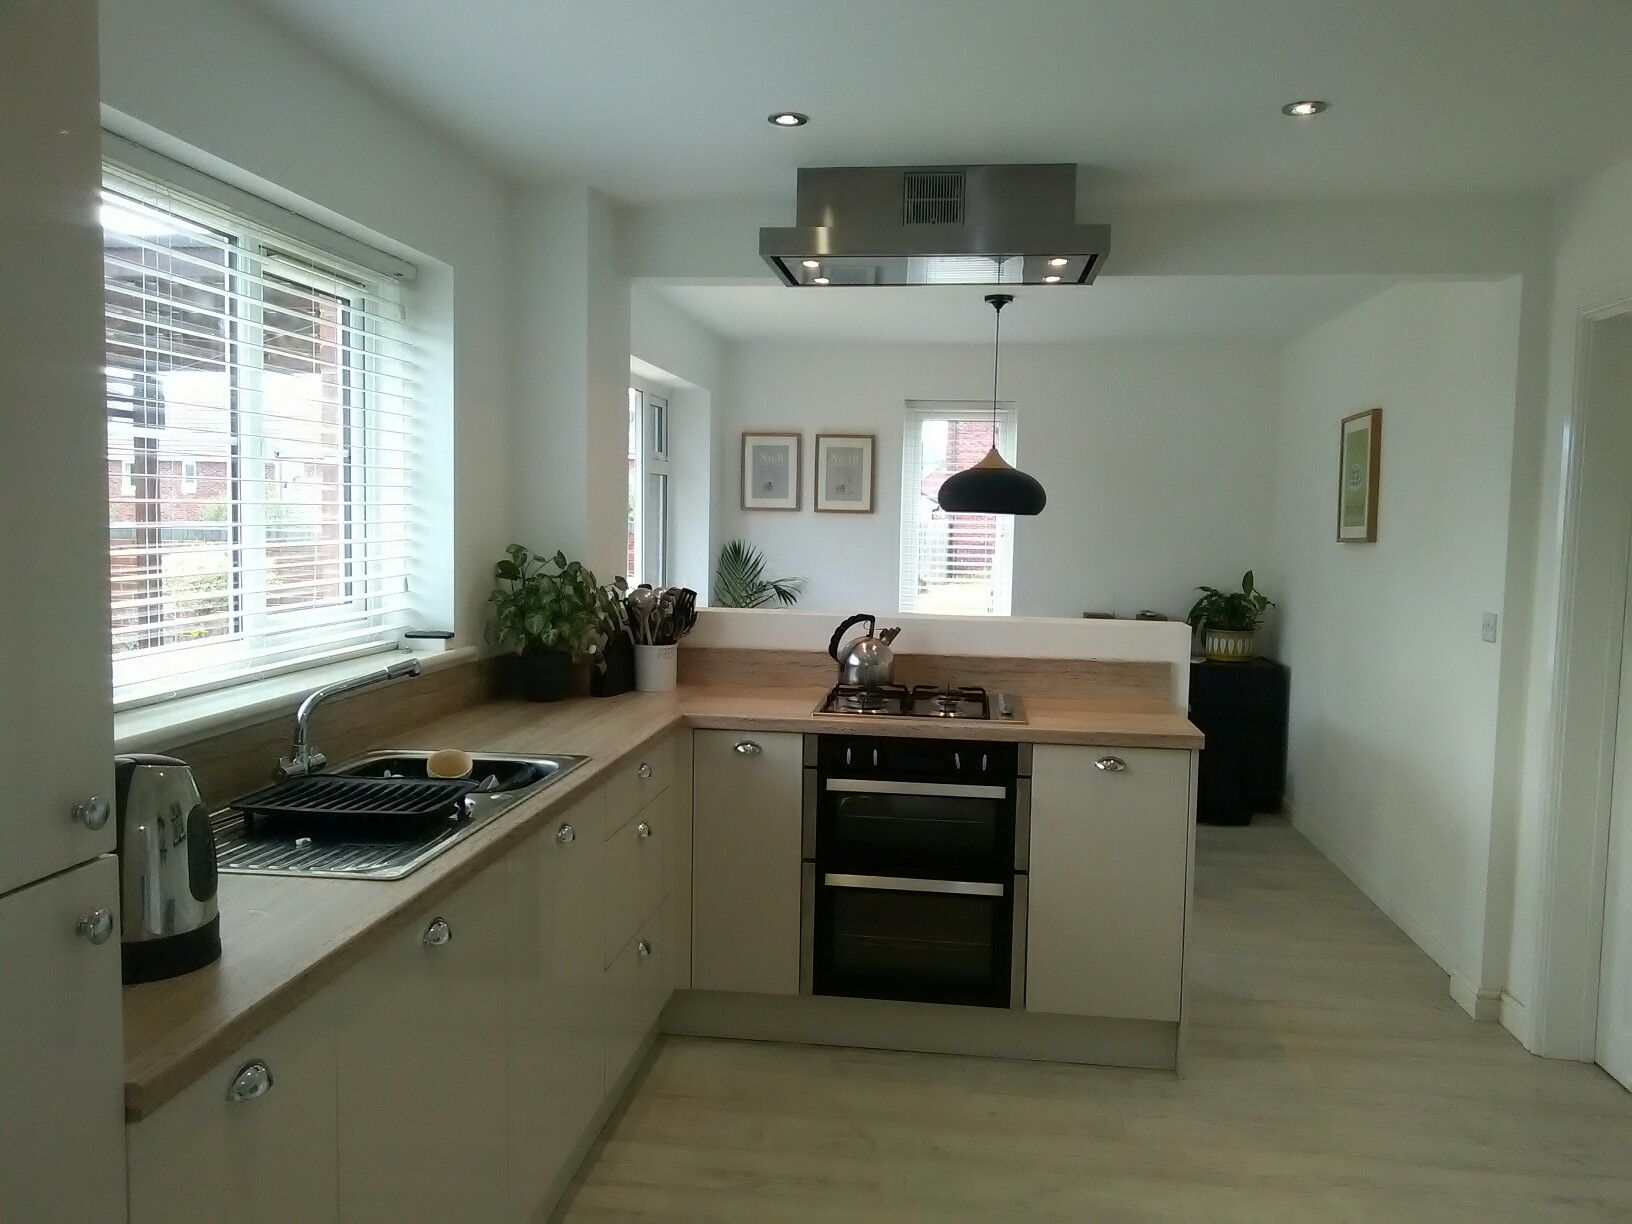 Family kitchen, dining, work space. Just completed knock through ...